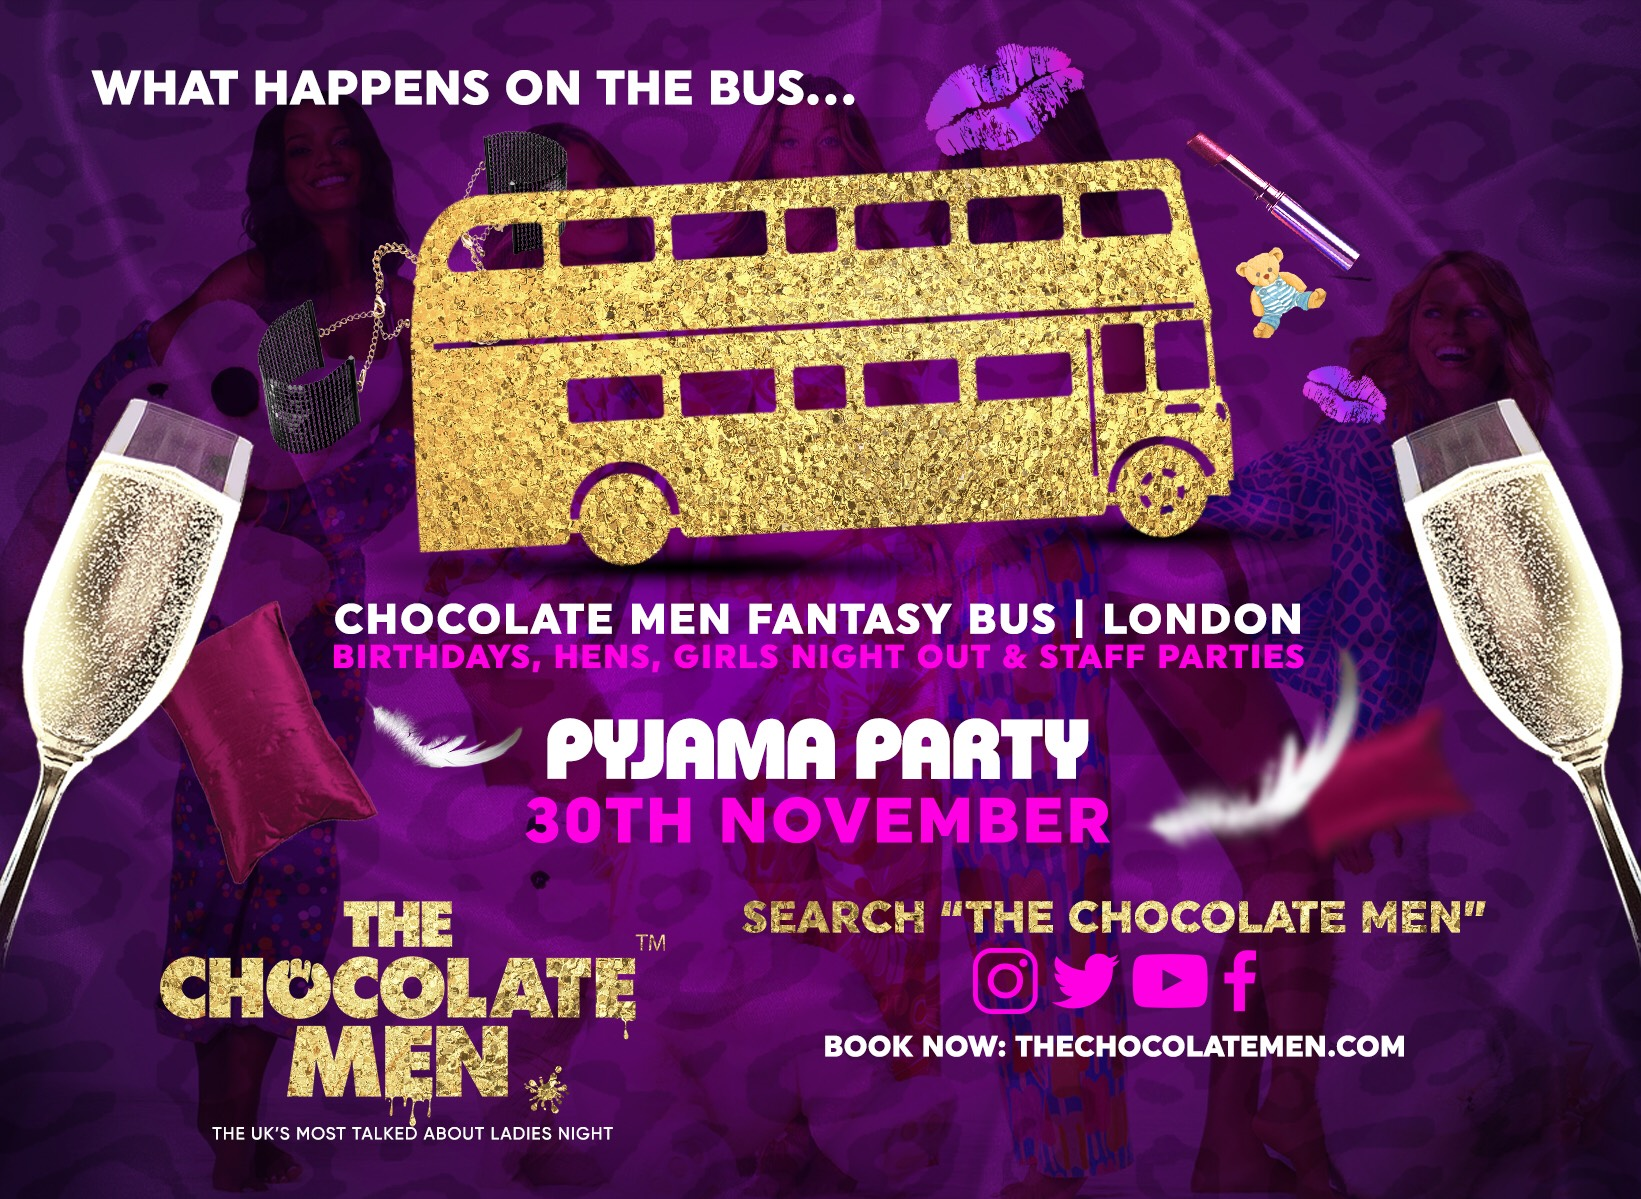 The Chocolate Men PYJAMA PARTY Fantasy Bus